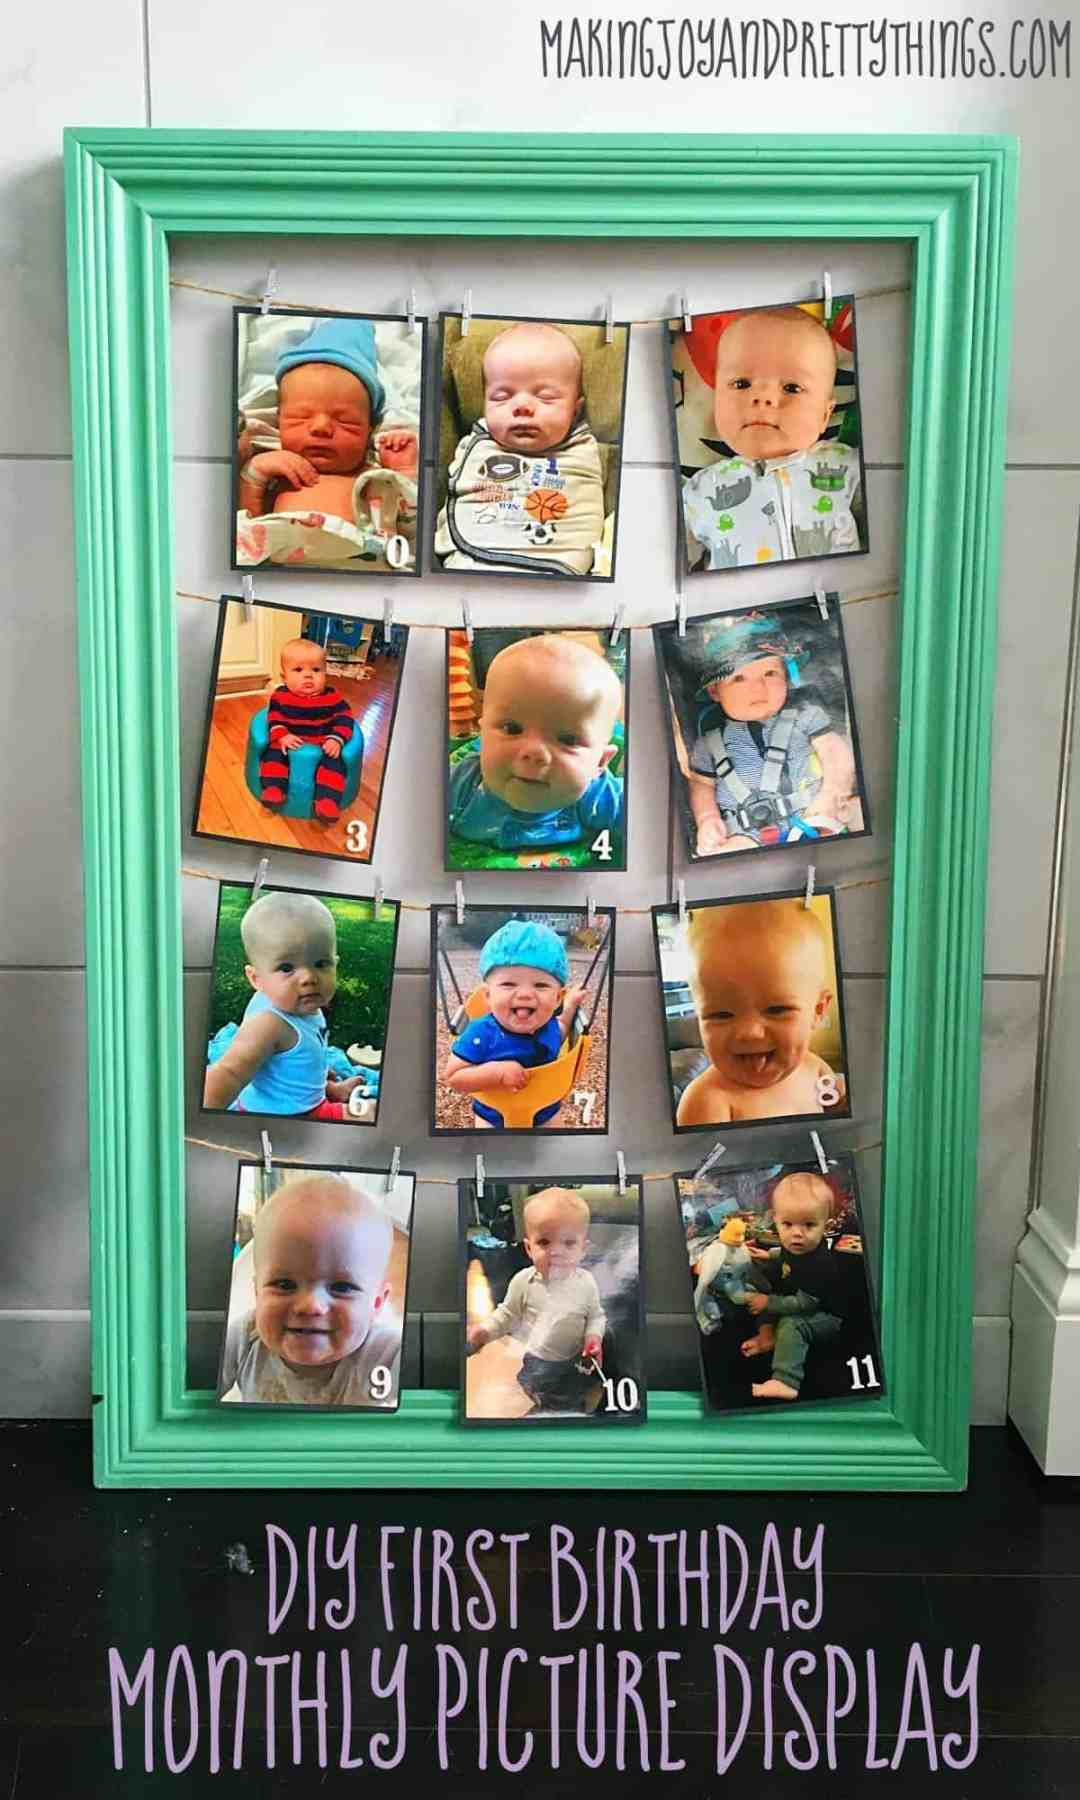 DIY Month by Month picture display. Perfect for 1st birthday parties. Easy DIY craft for birthday party decor!